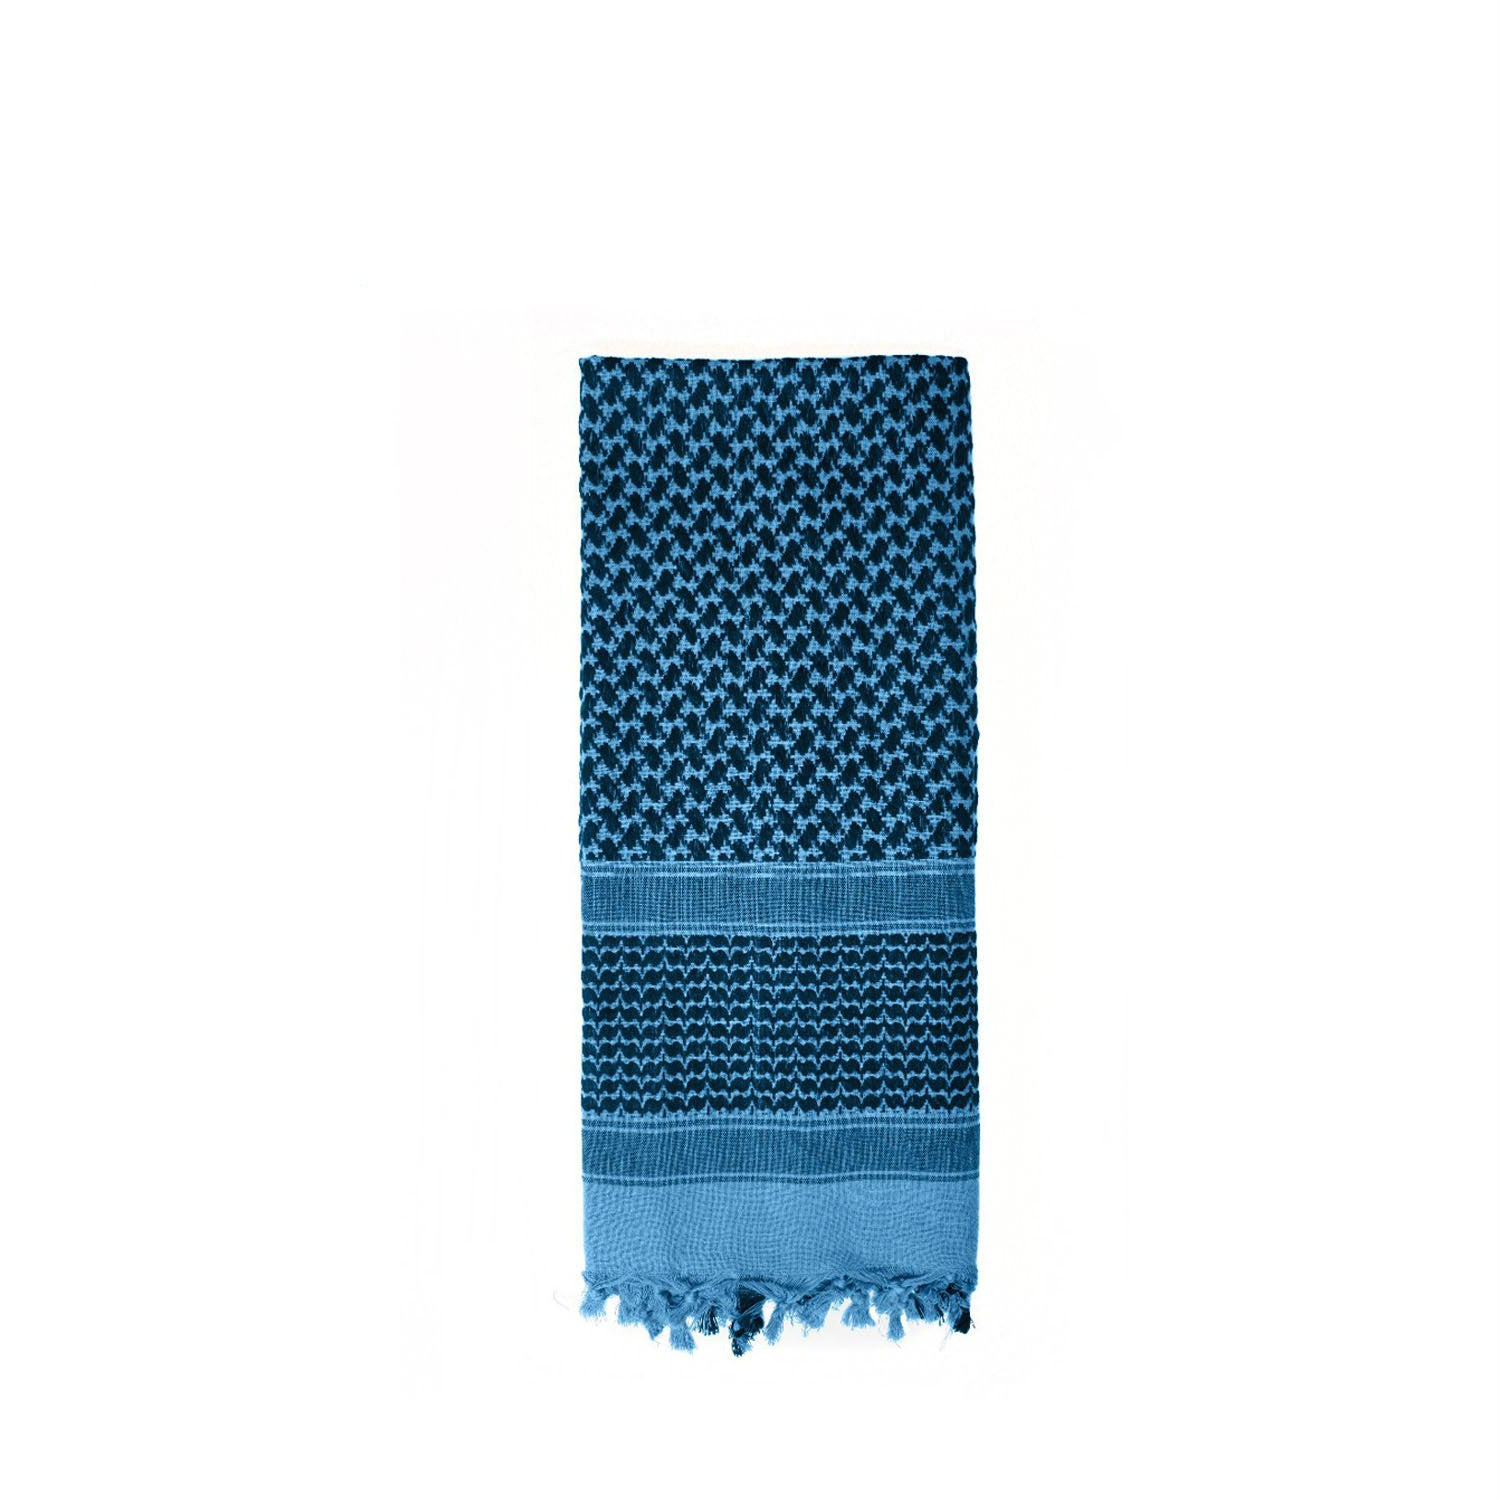 Shemagh Tactical Desert Scarf Blue / Black